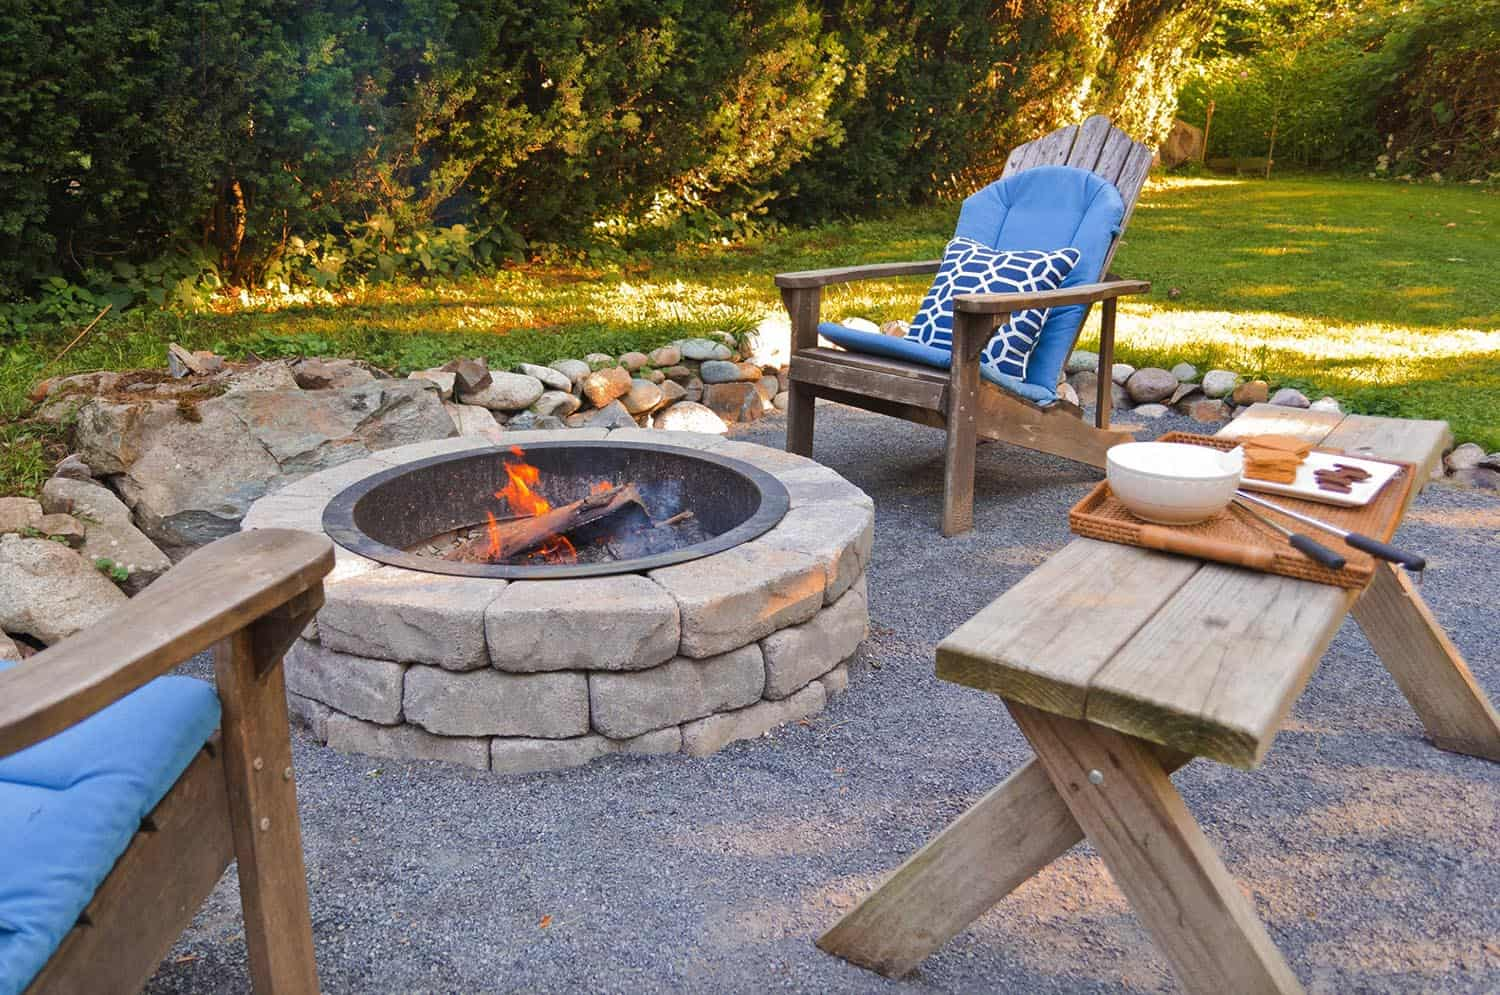 coastal-style-outdoor-design-ideas-with-fire-pit